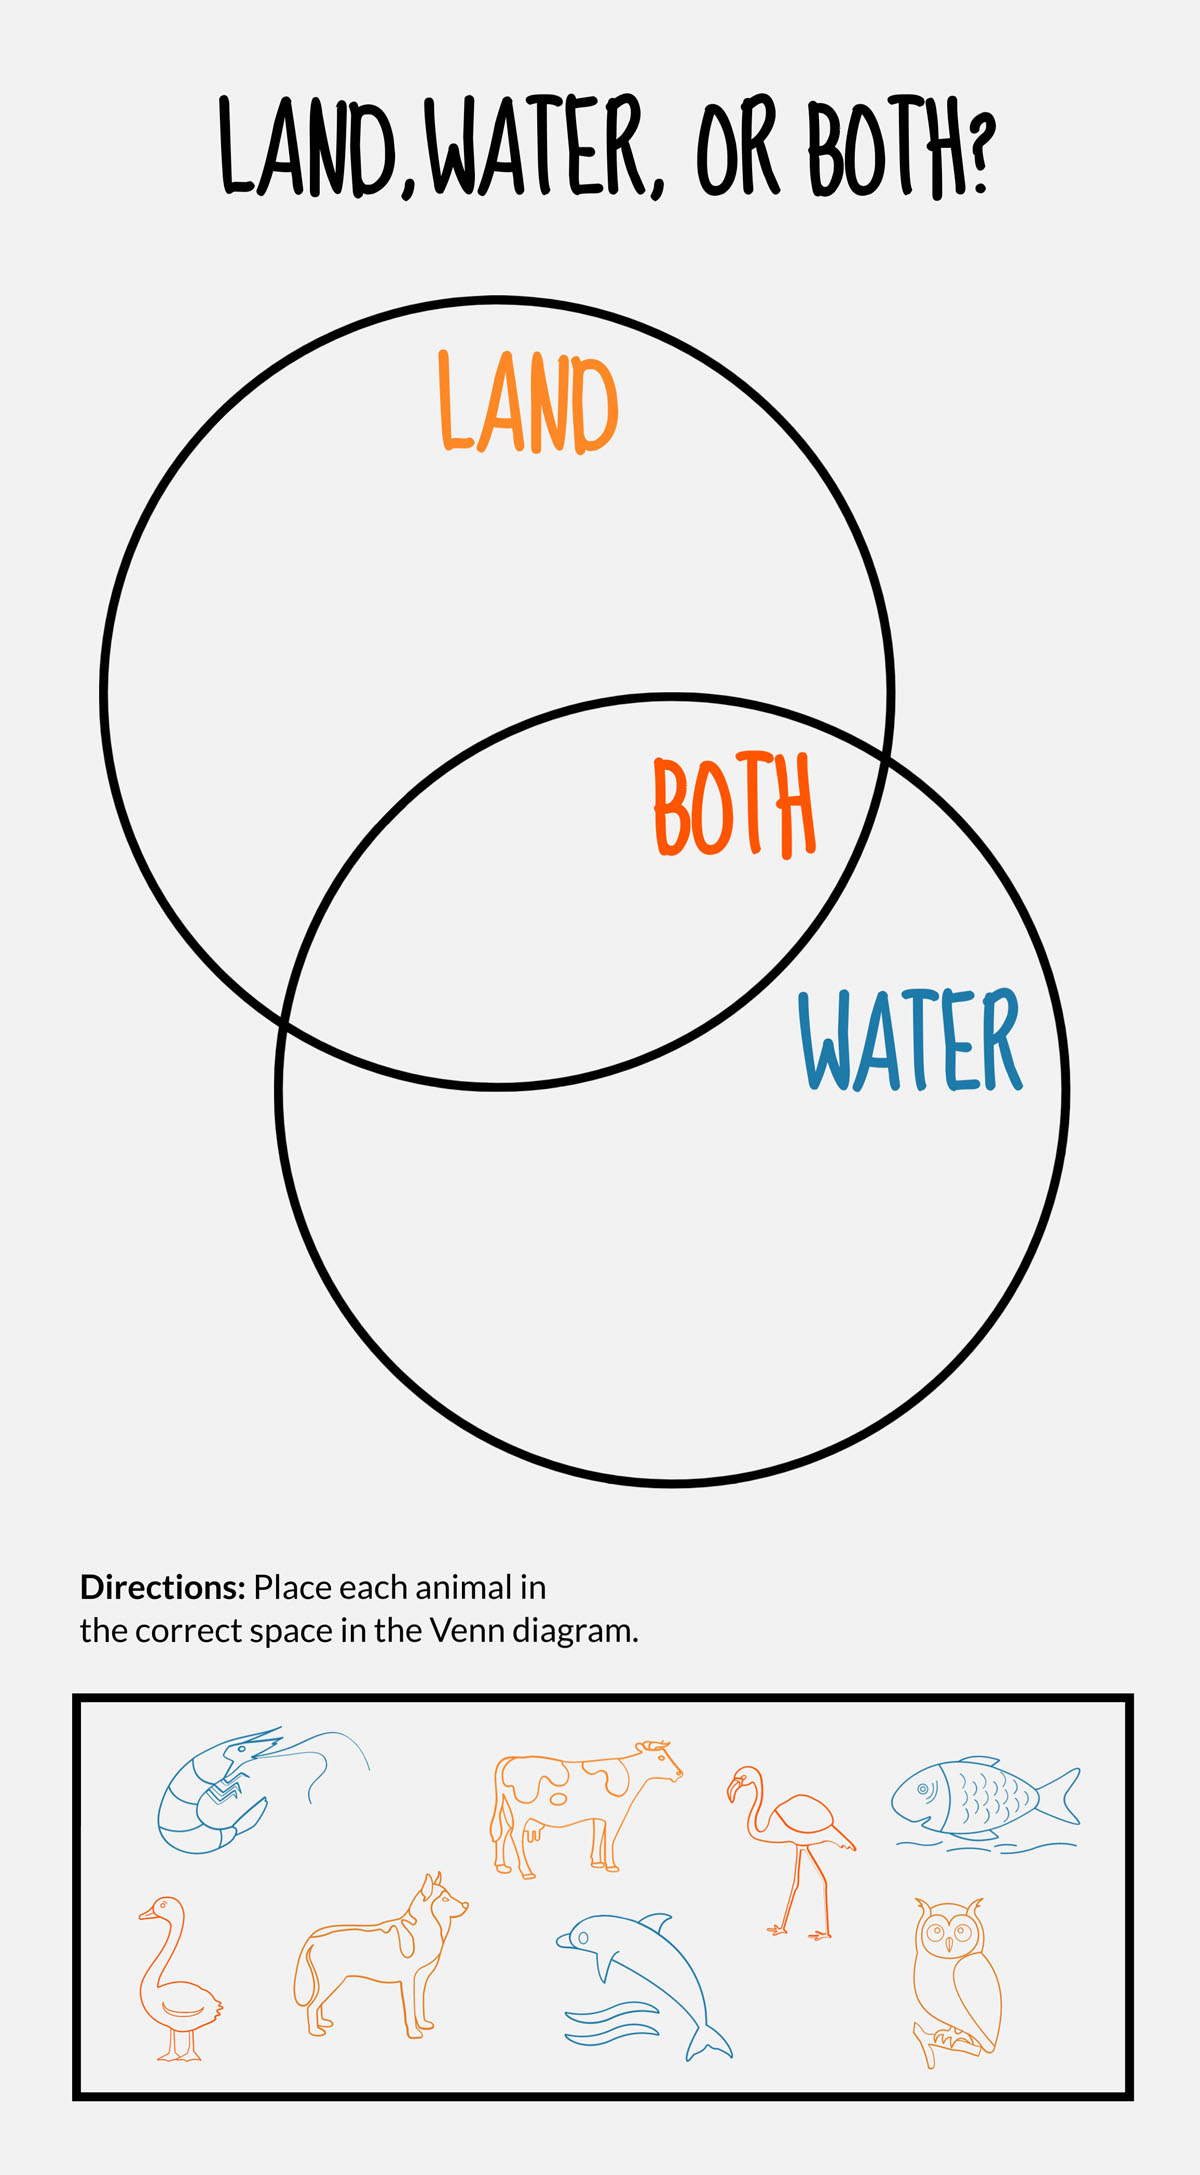 What is a Venn Diagram and How Do You Make One in VismeVisme